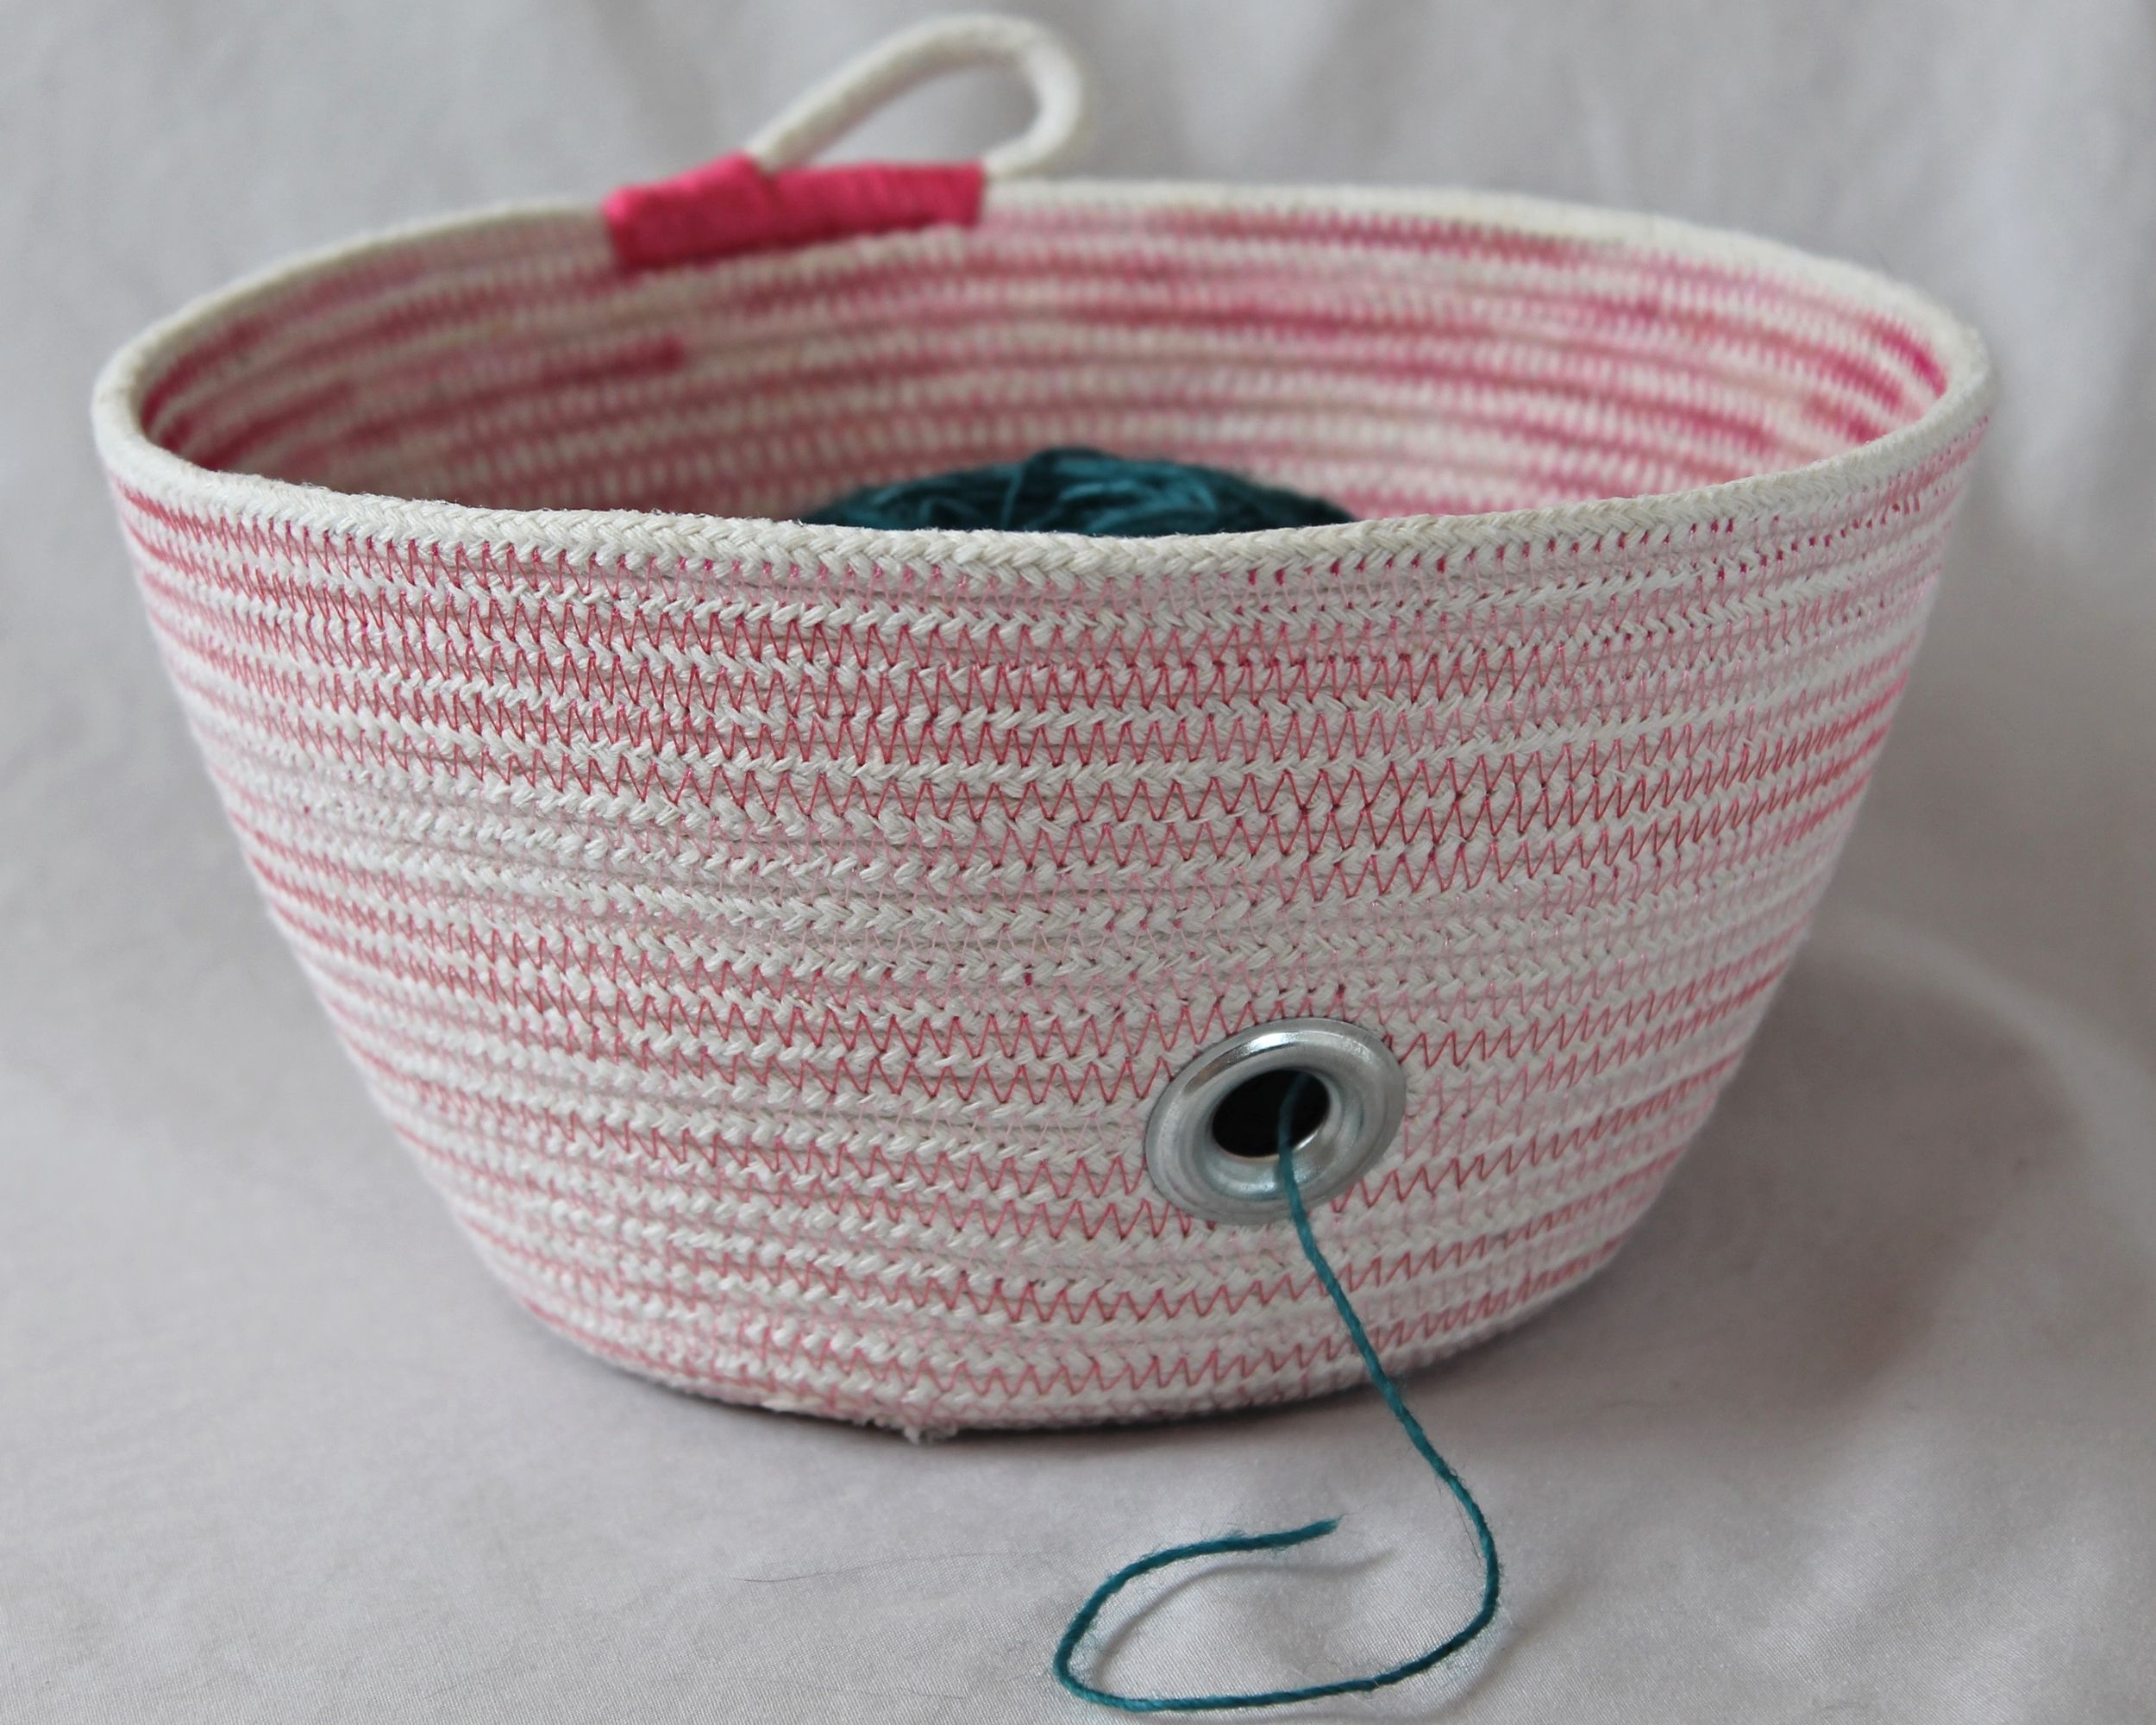 Baskets measured and slow coiled fabric basket